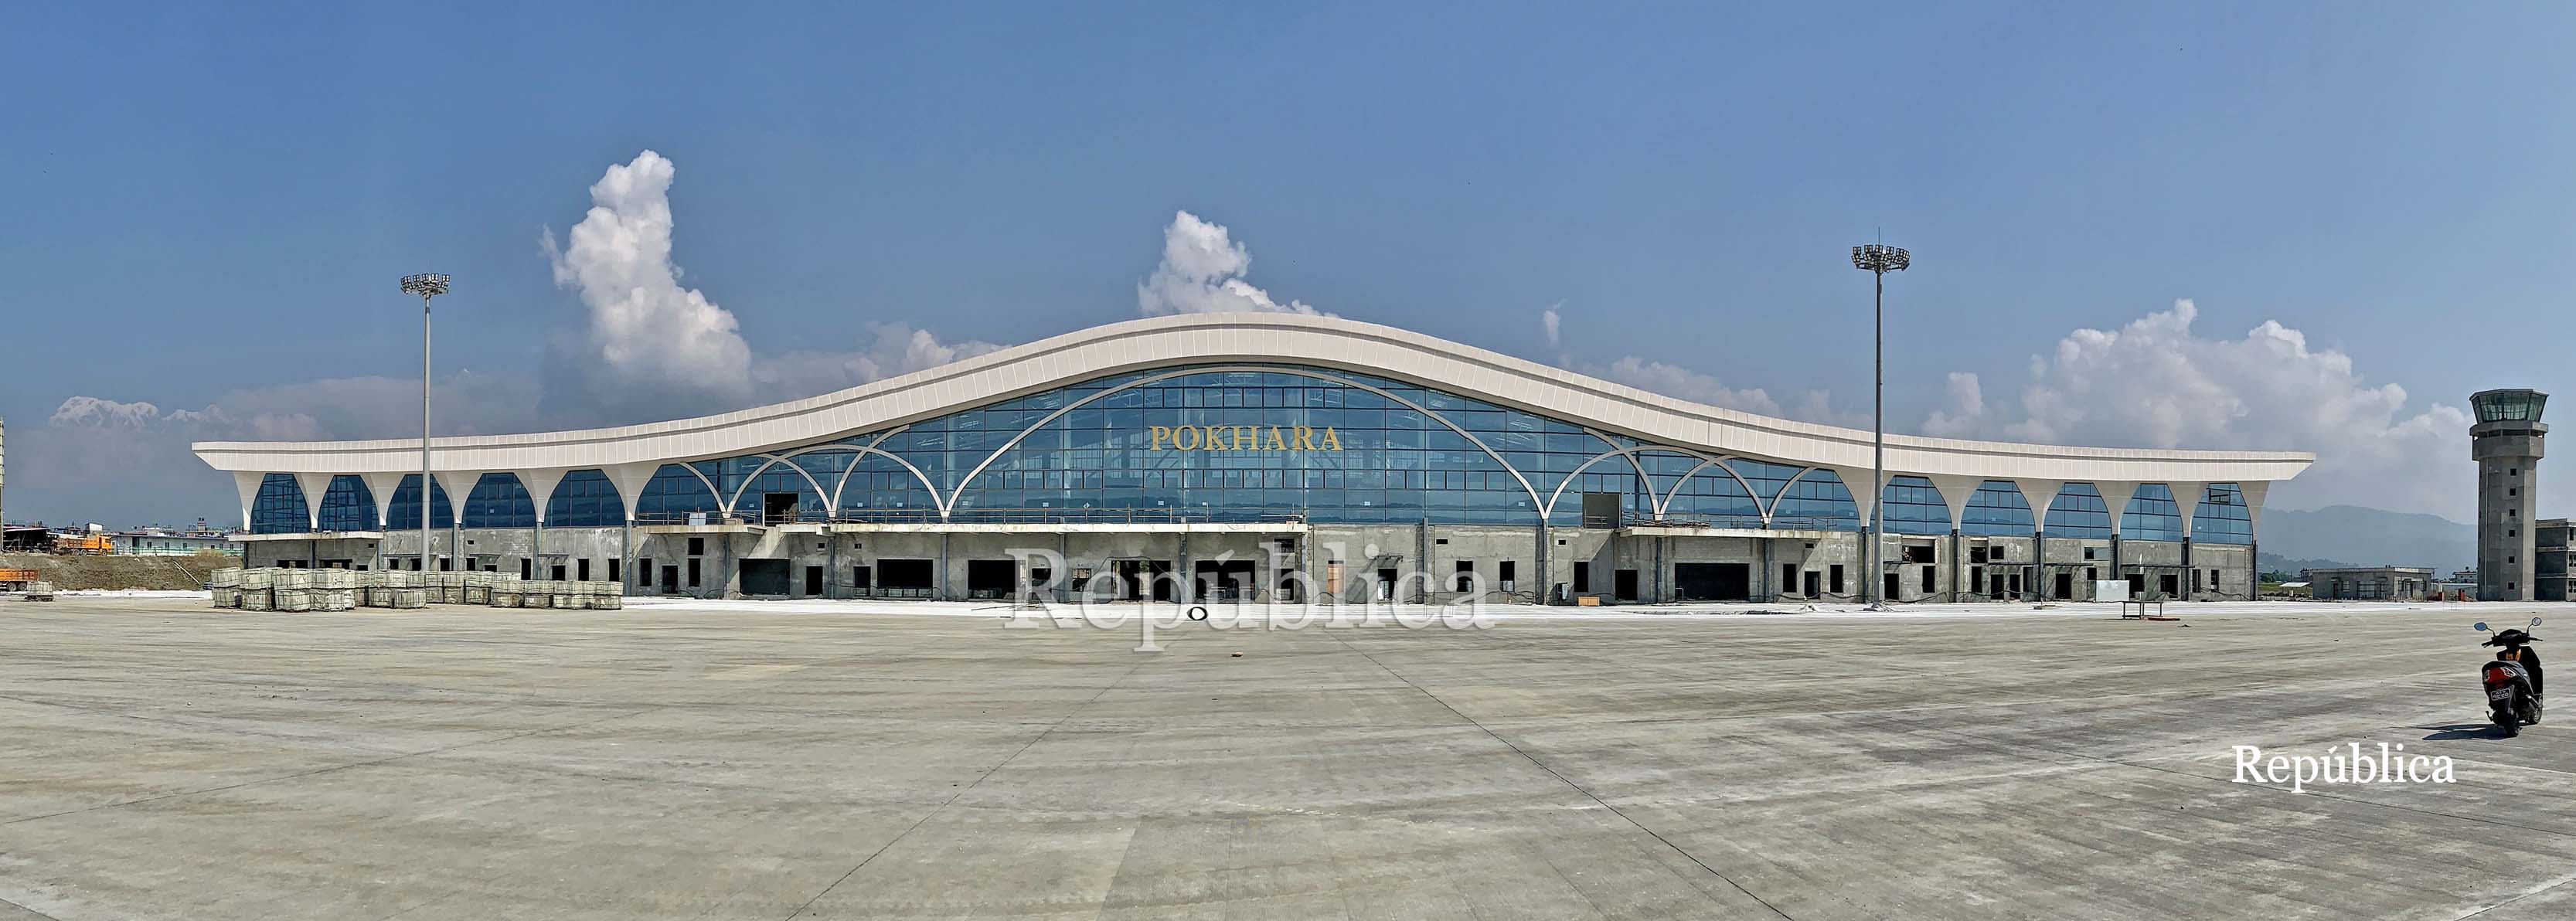 Government aims to operate new international airports in the next fiscal year